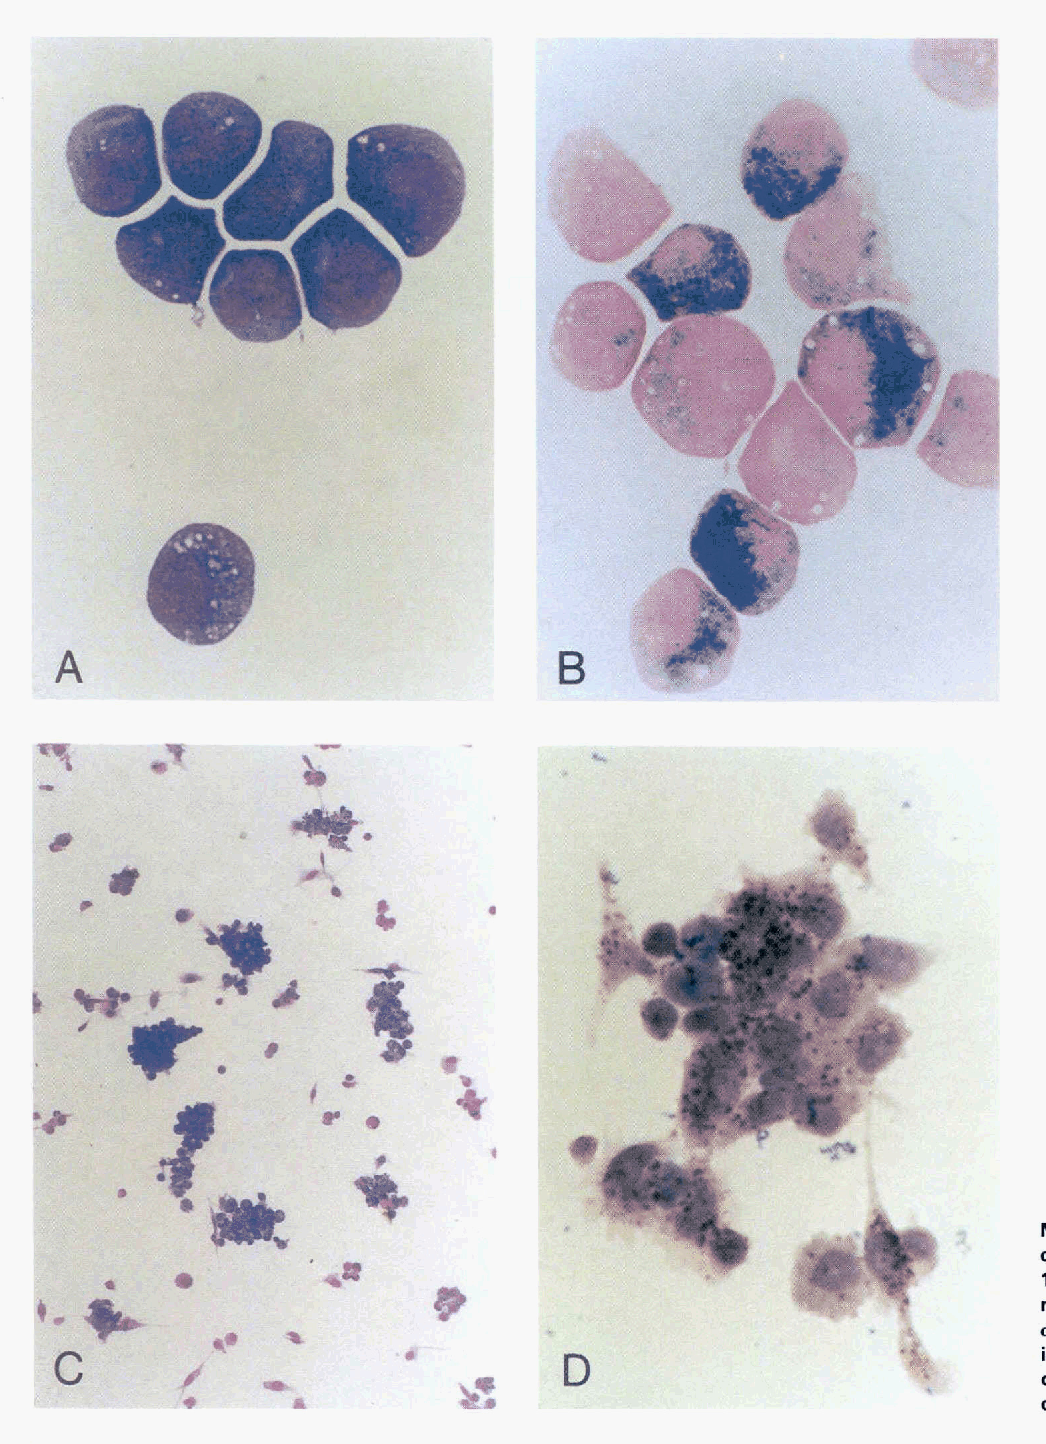 Fig 1. (A) MG staining and (B)